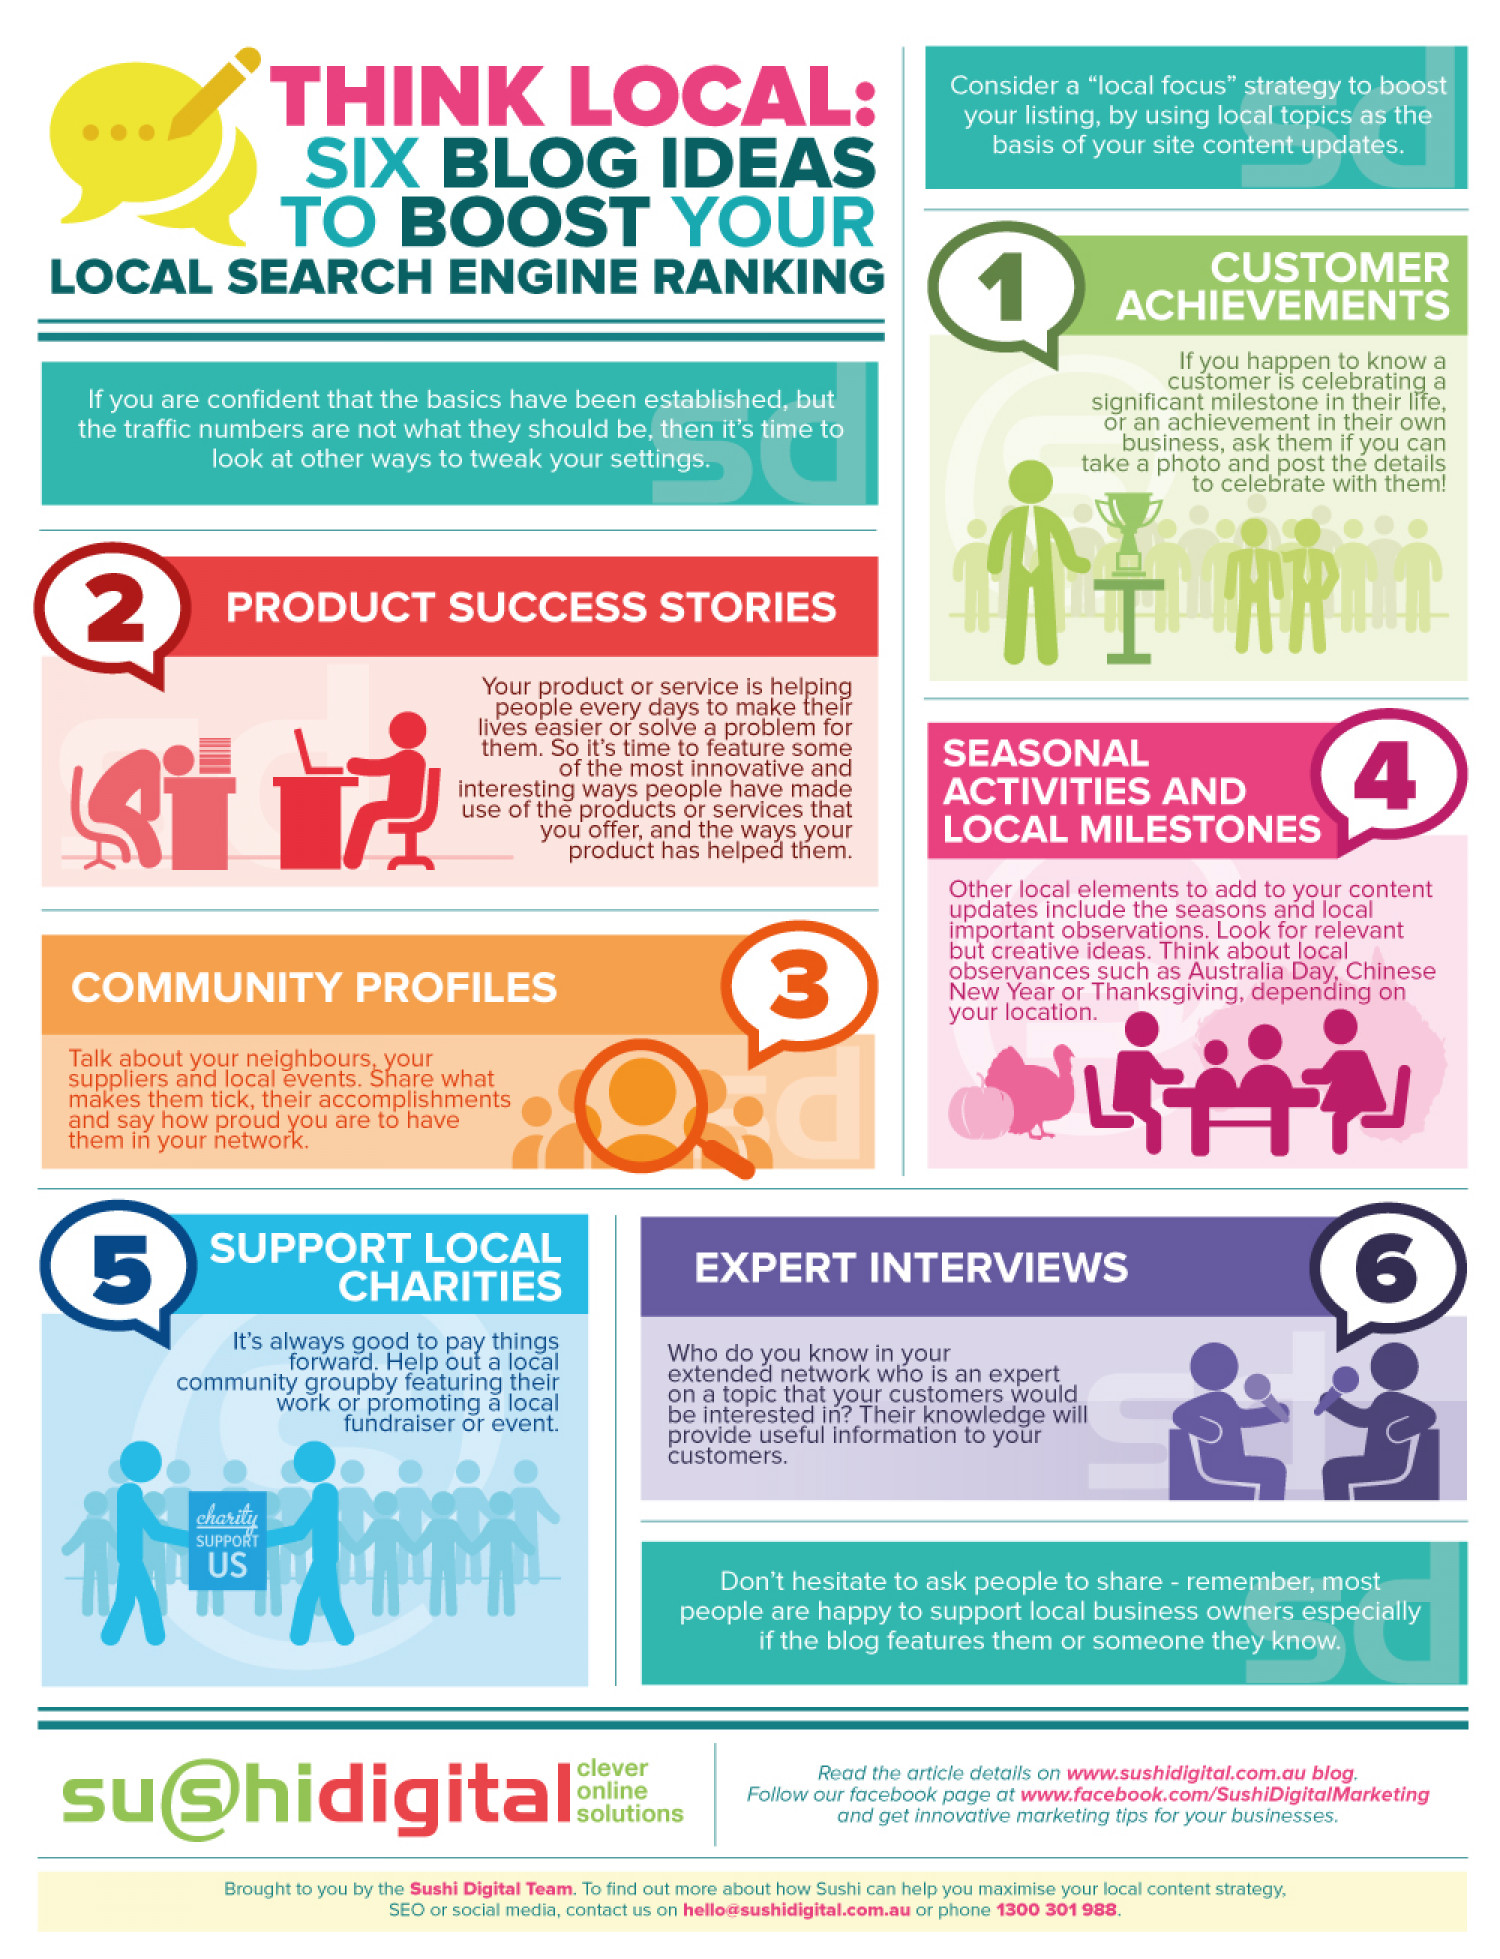 Think Local Six Blog Ideas To Boost Your Local Search